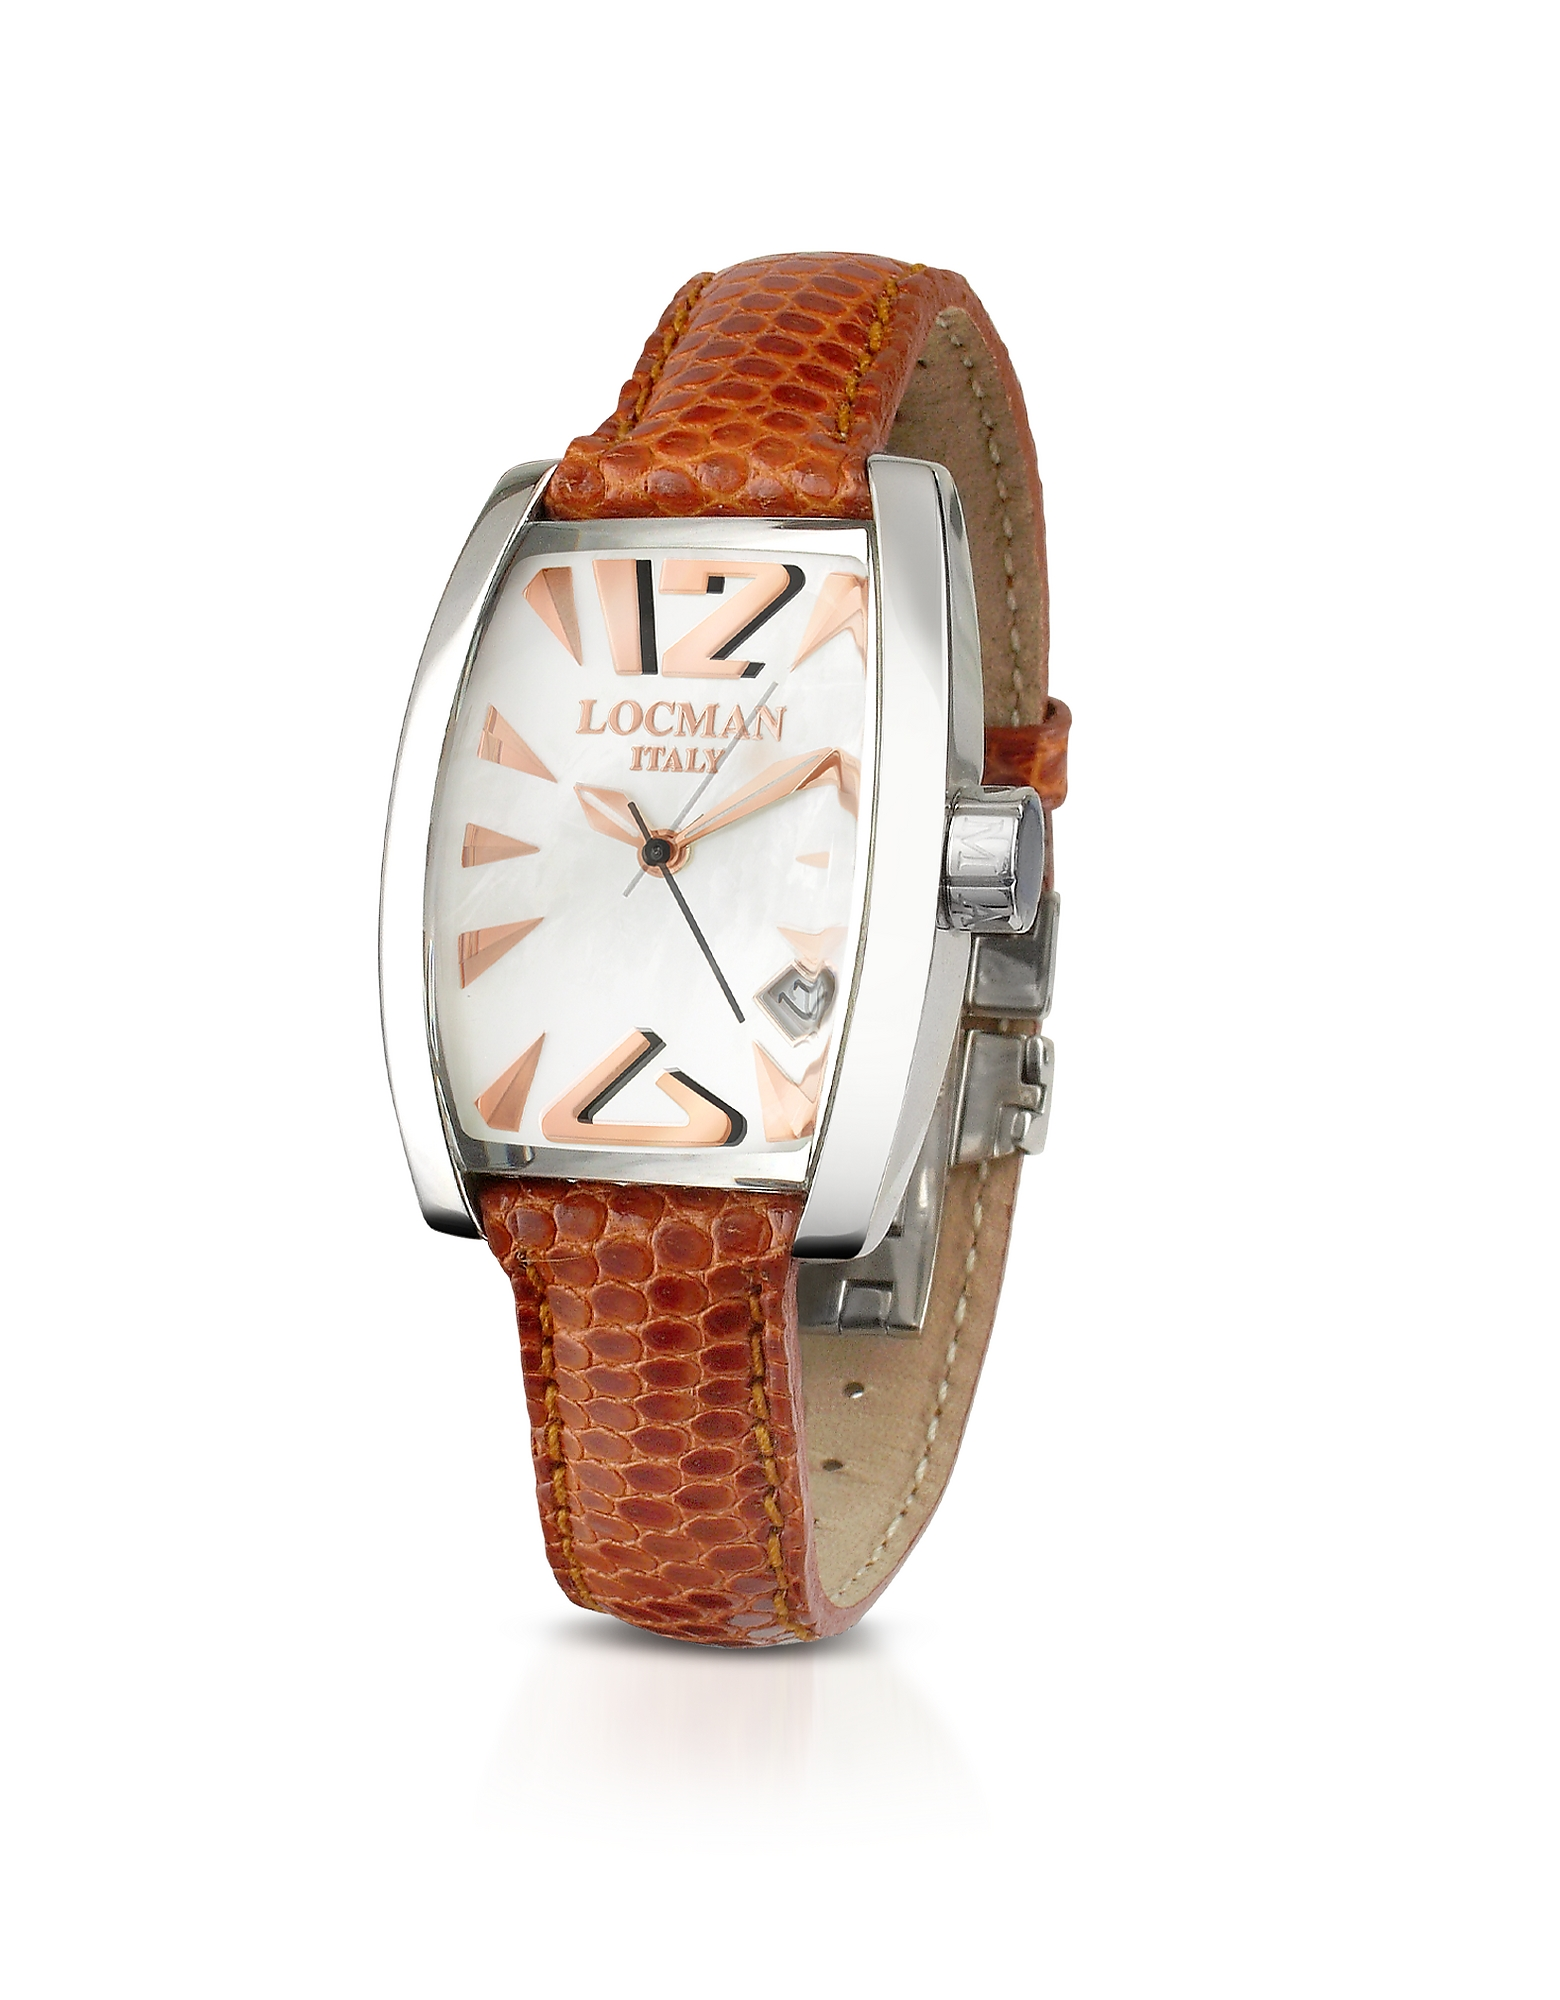 Locman Women's Watches, Panorama Mother-of-Pearl Dial Dress Watch